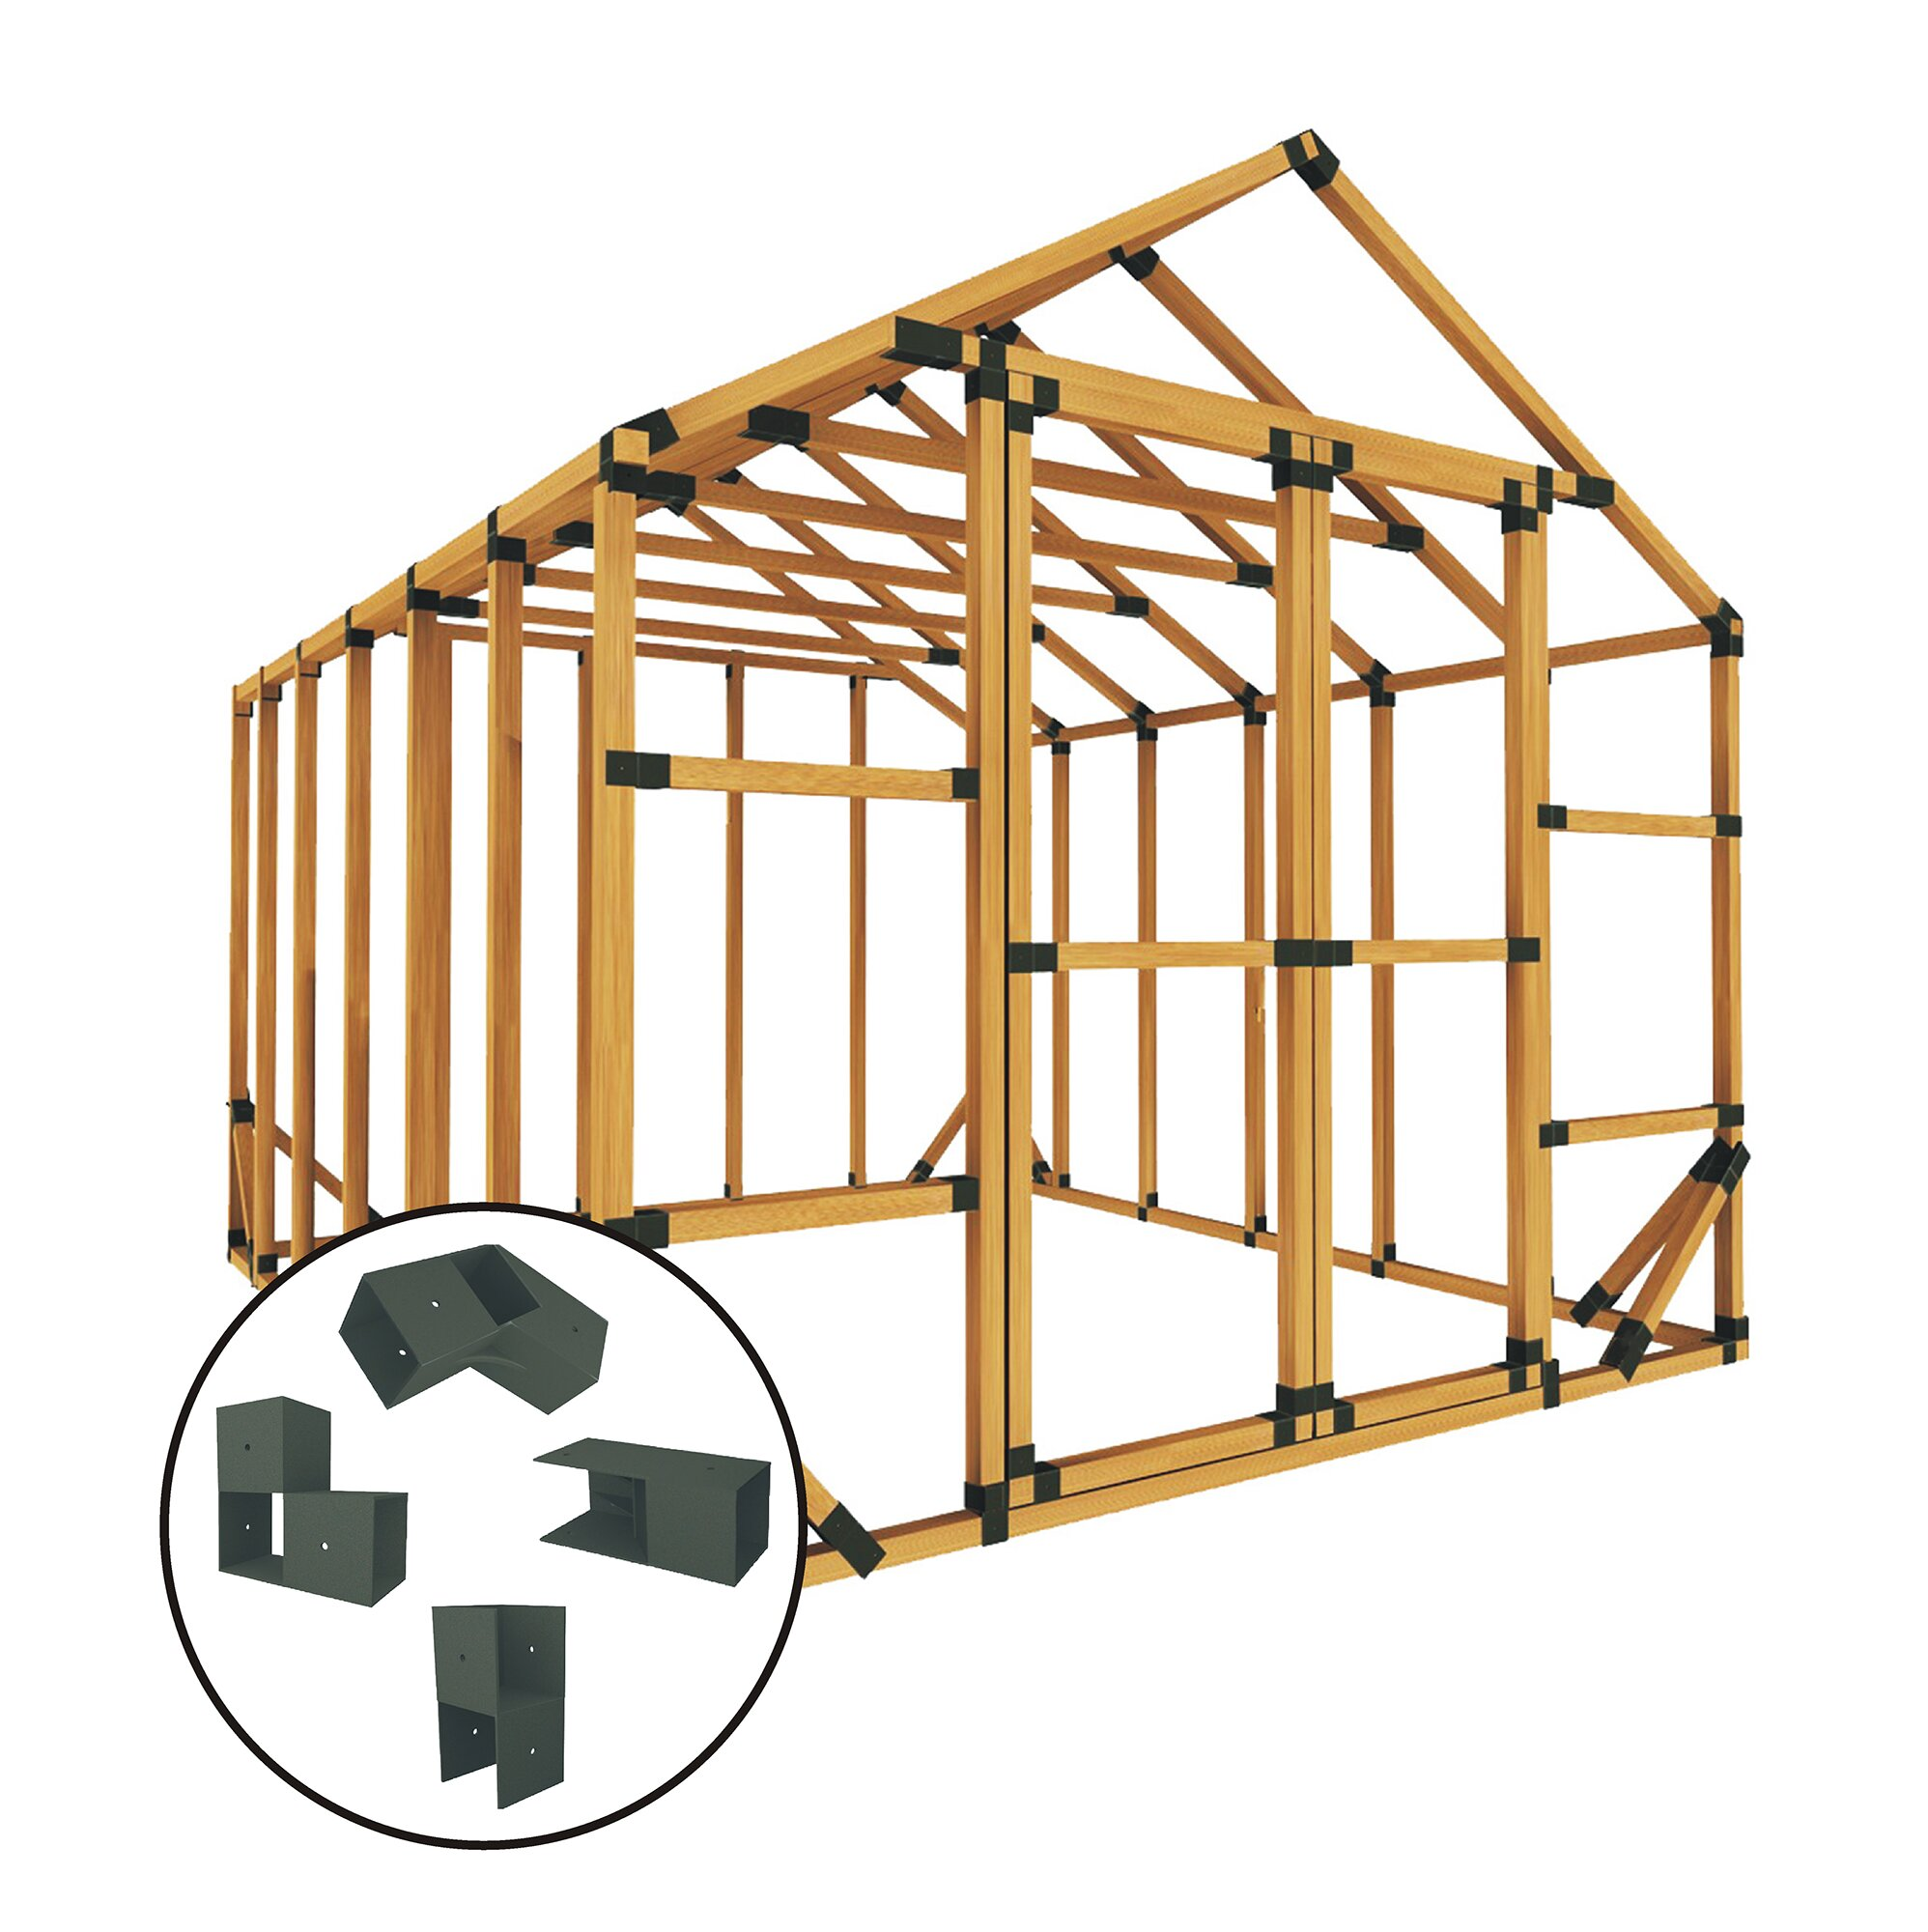 10 Ft  W x 12 Ft  D Hobby Greenhouse